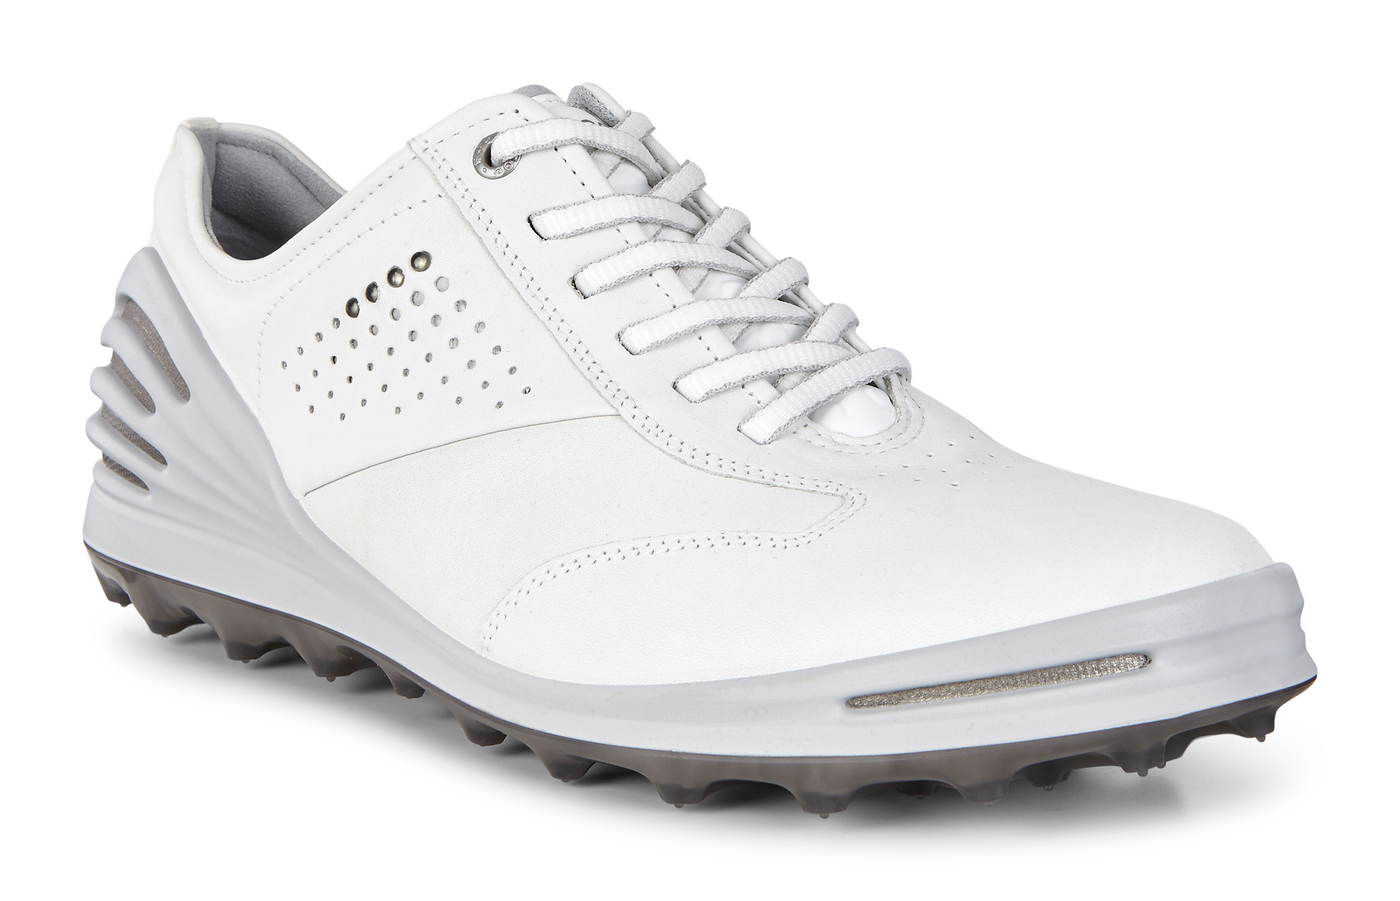 9bffb04eec387 ECCO Men's Cage Pro | Golf Hybrid Shoes | ECCO® Shoes